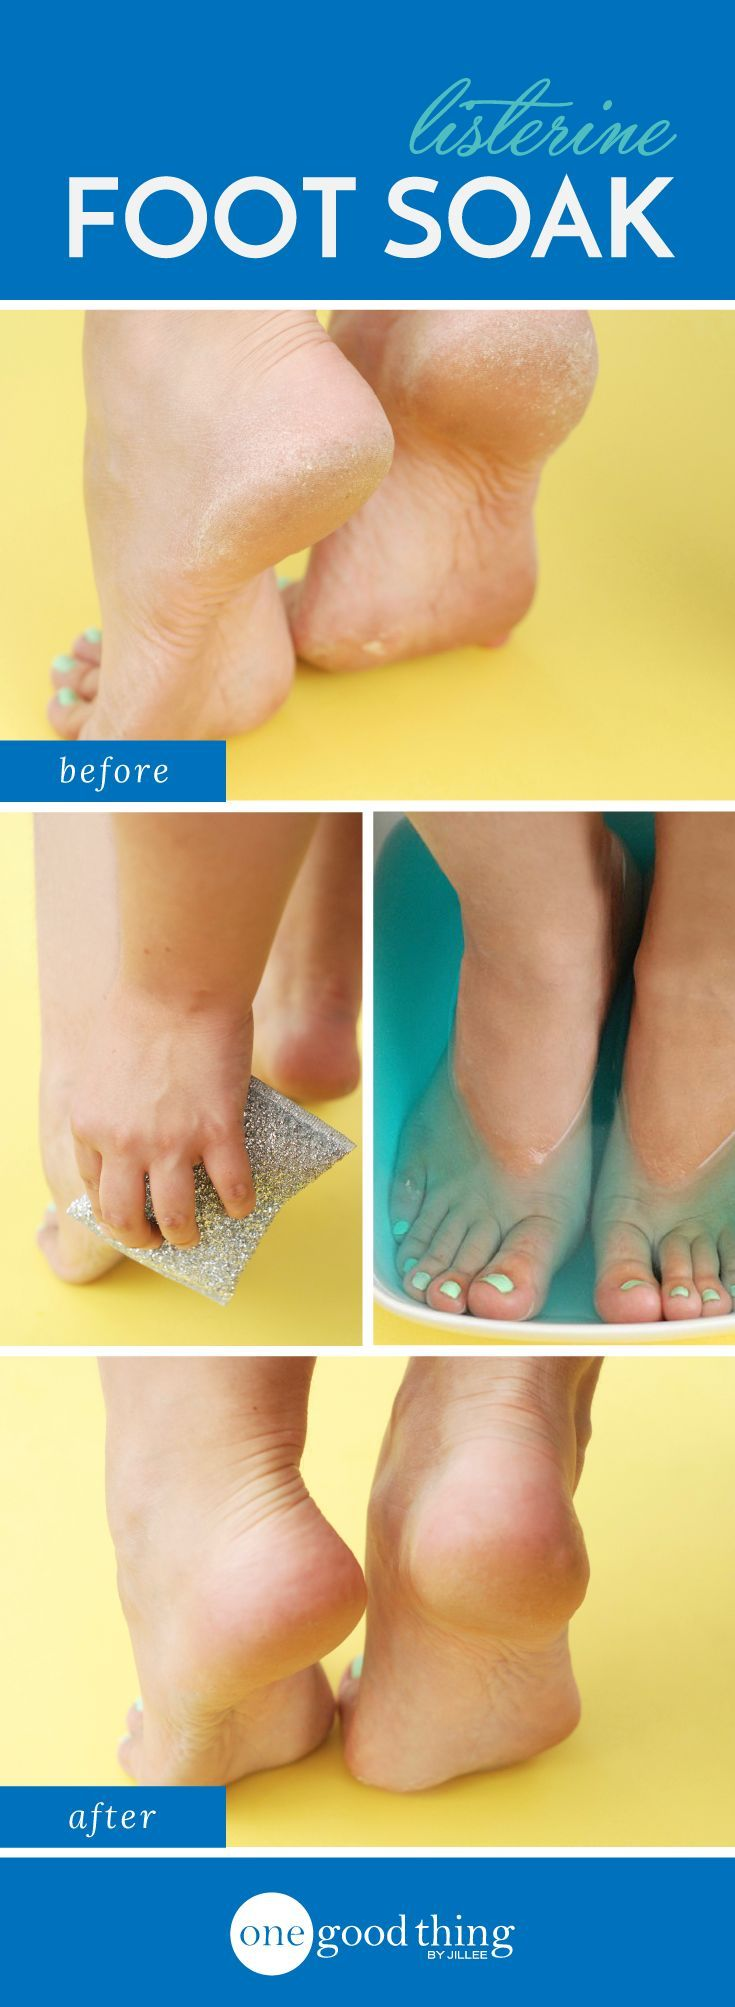 This strange-sounding foot soak of Listerine and vinegar works wonders to smooth and soften dry, cracked feet and heels. Try it for yourself!